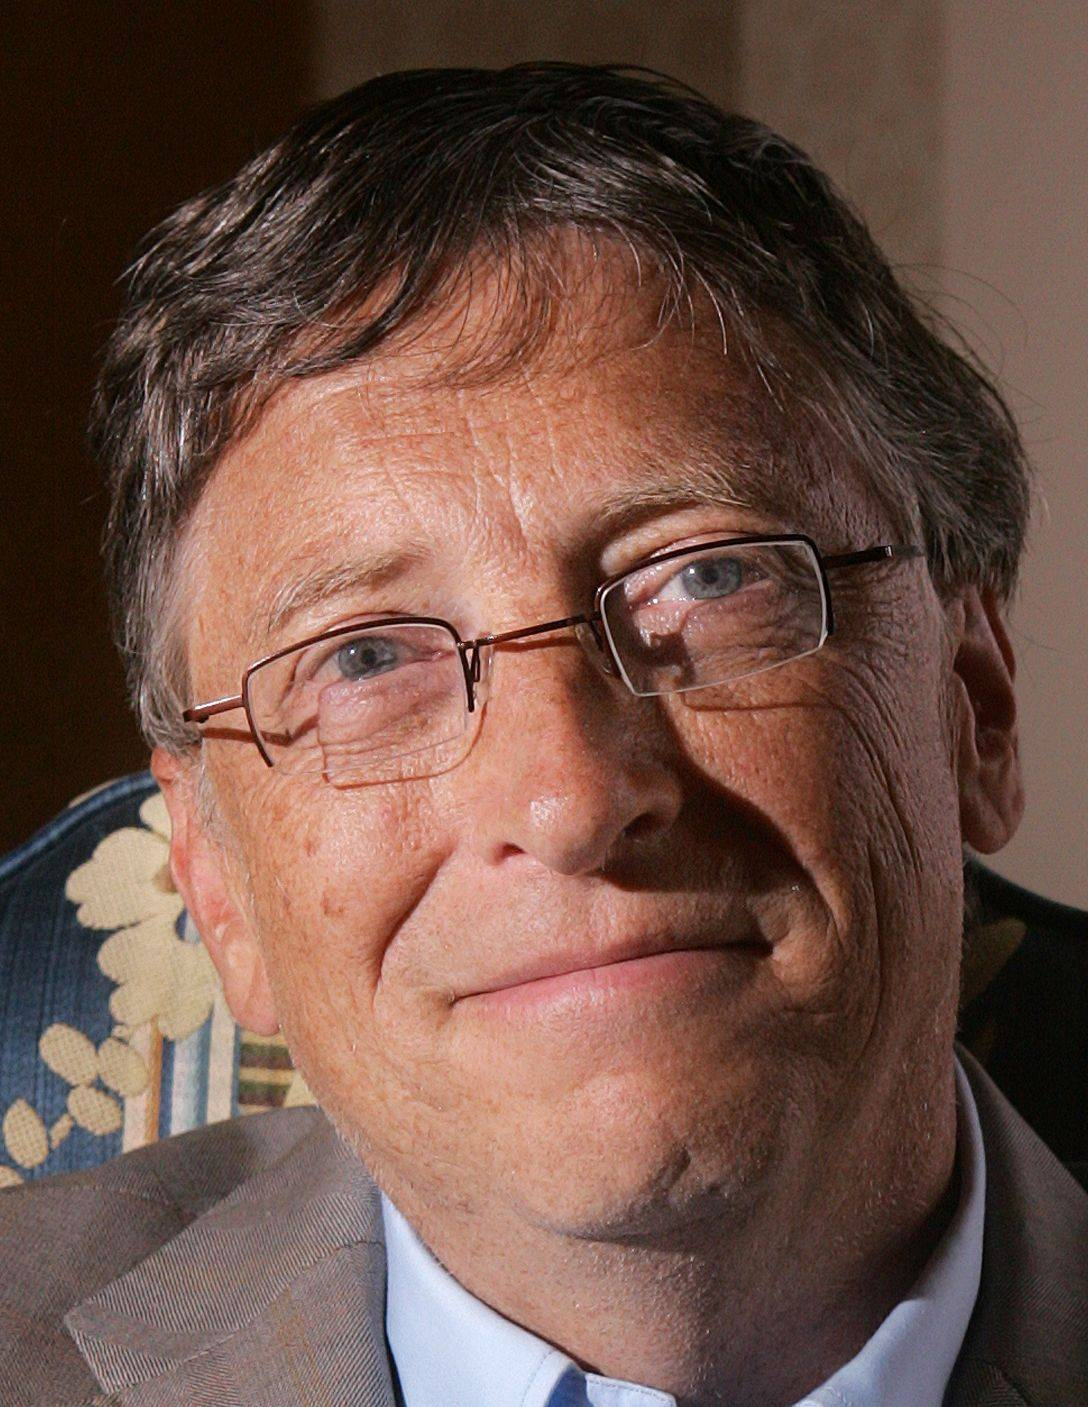 Forbes says Microsoft co-founder Bill Gates has been named America�s richest person for the 18th consecutive year.